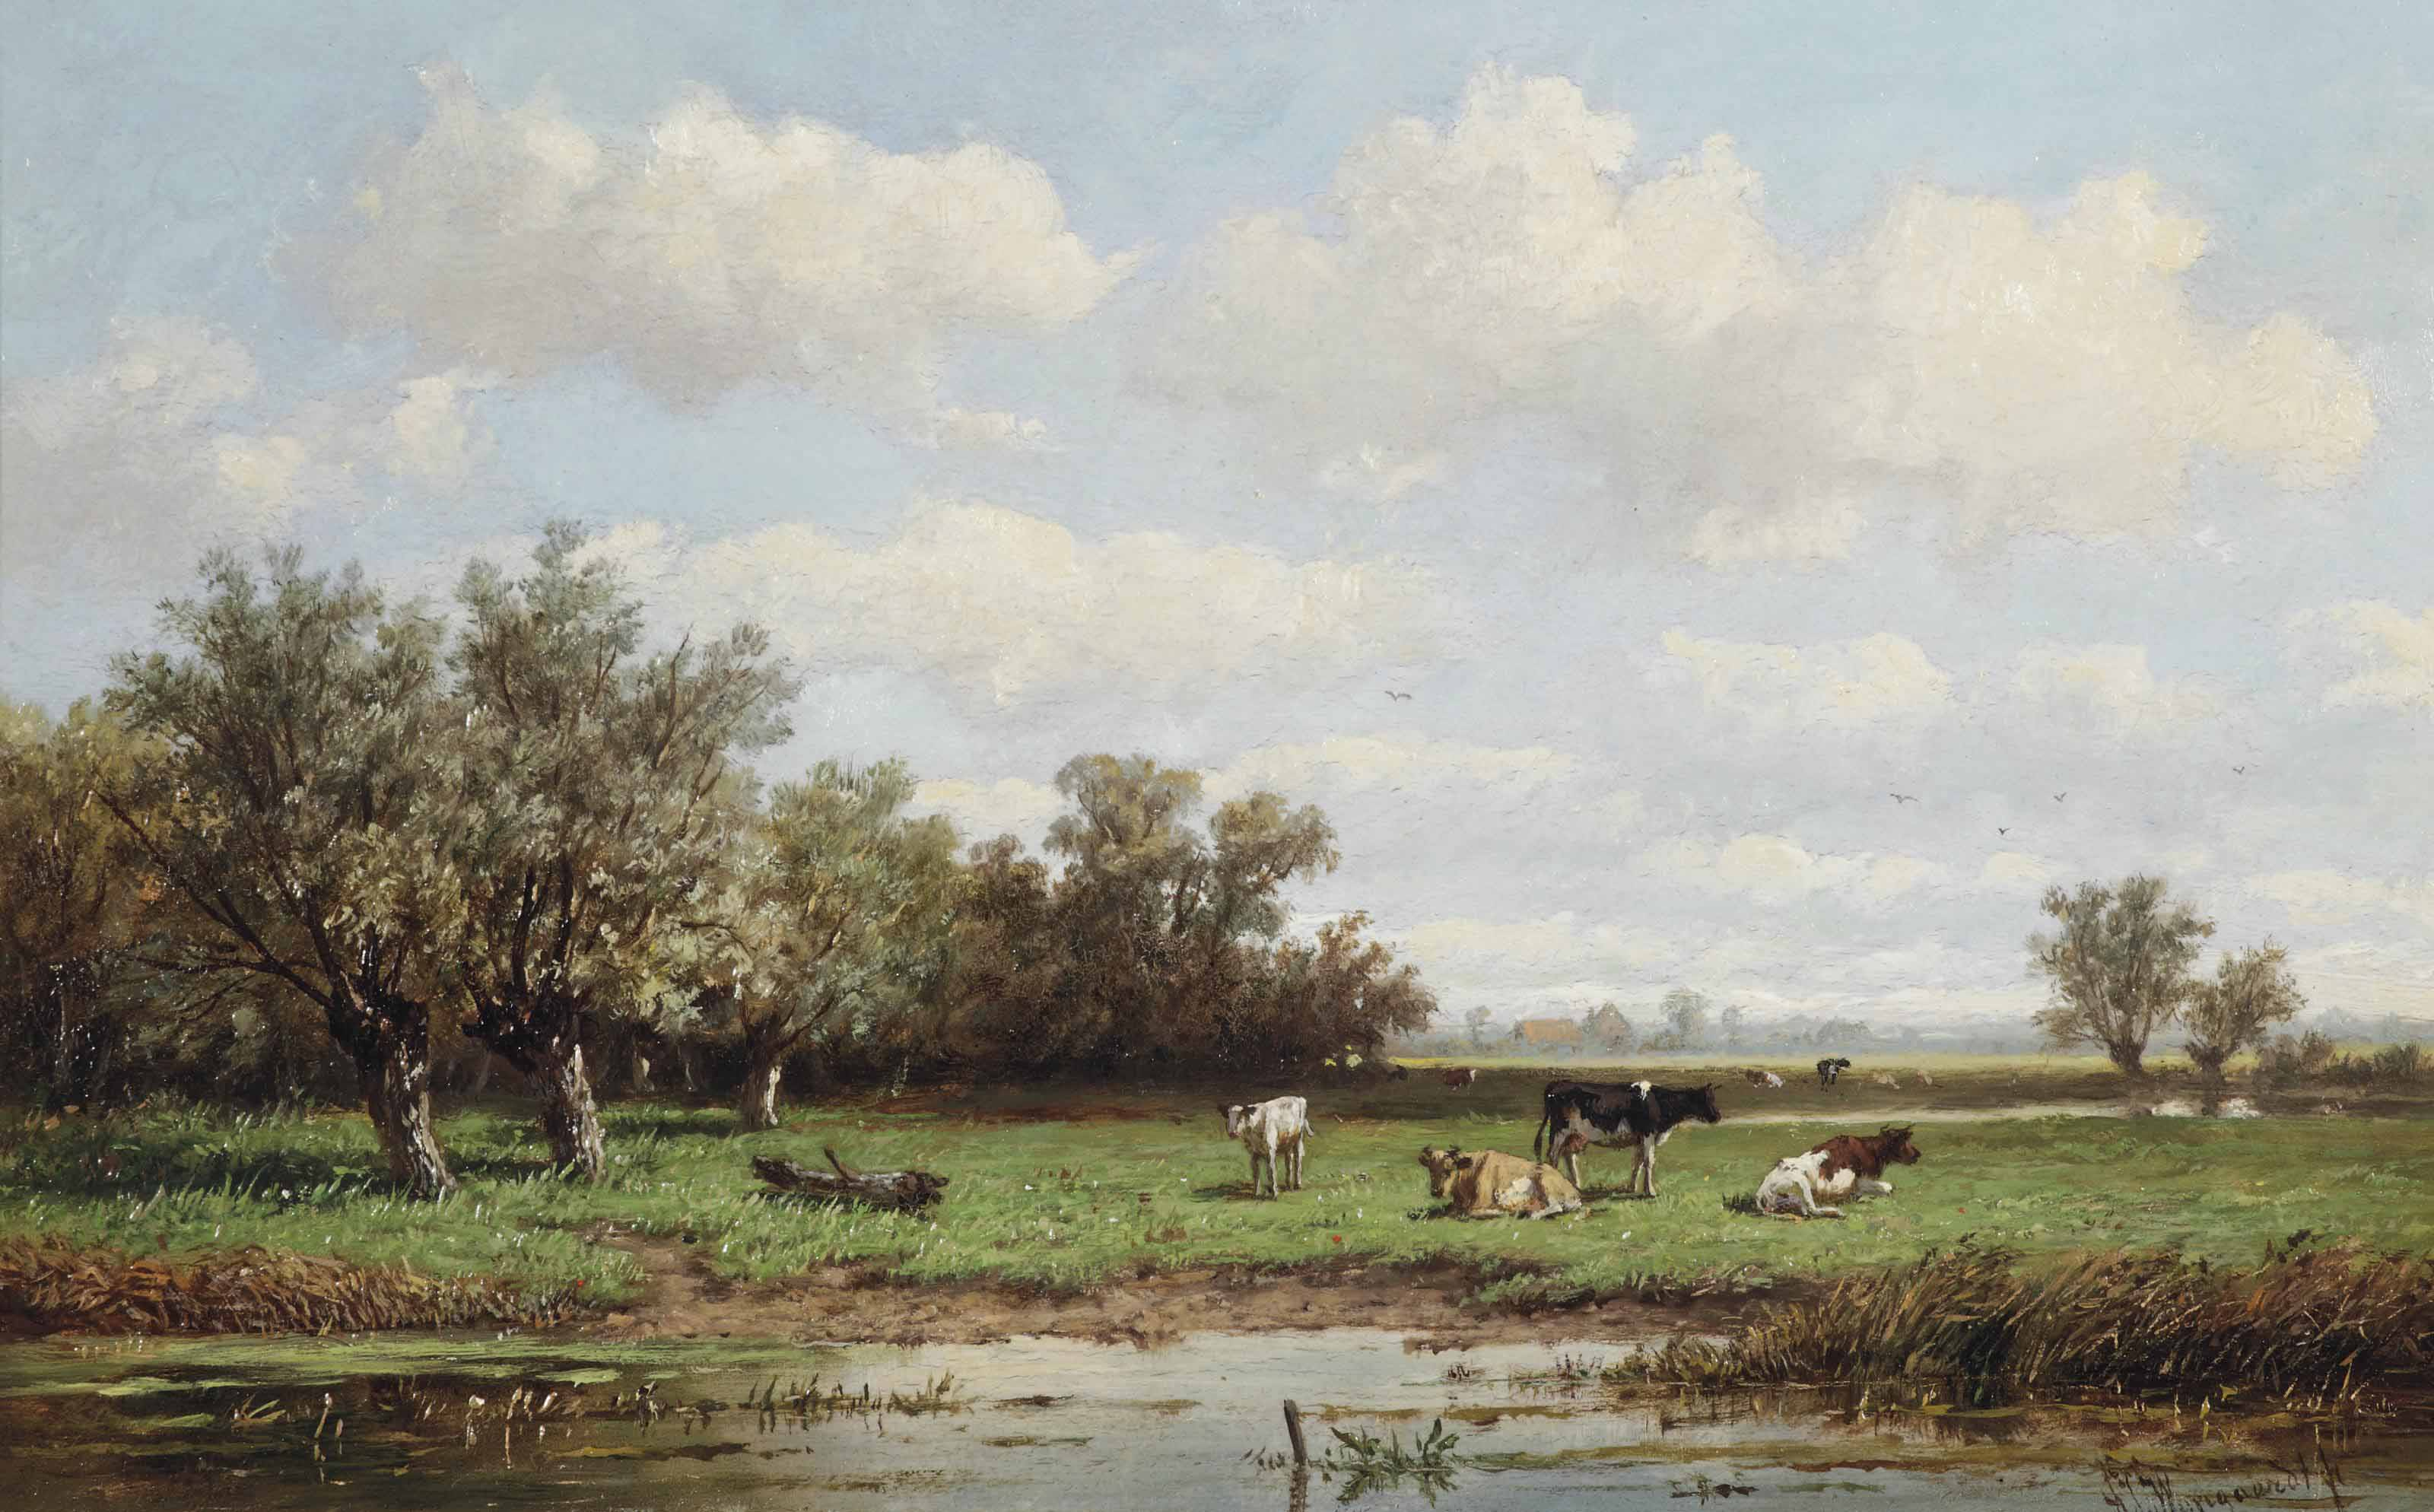 Cattle in a summer polder landscape